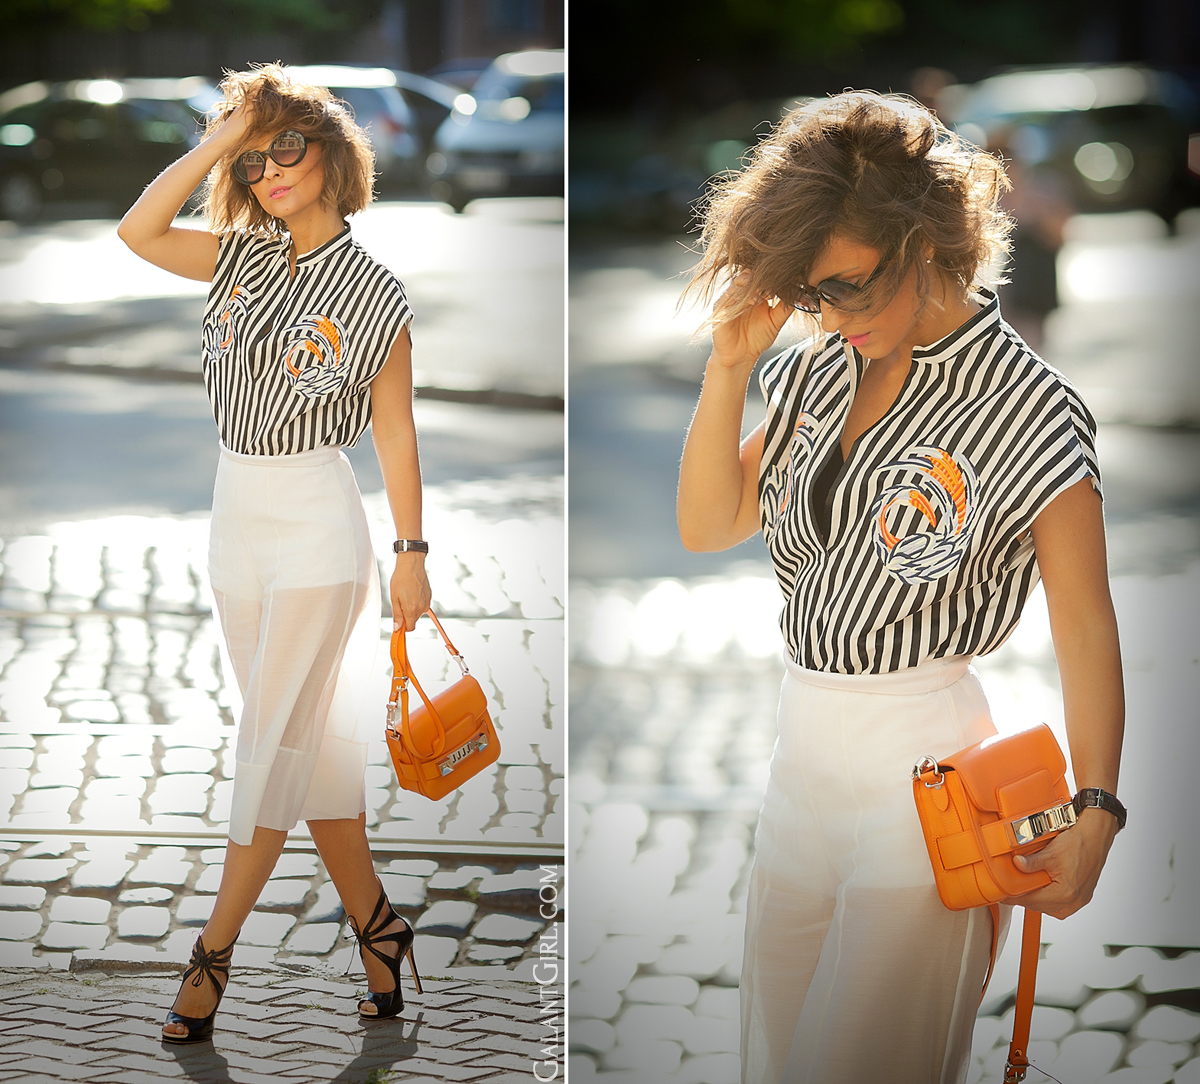 culottes-outfit-and-proenza-schouler-ps11-bag-fashion-blogger-galant-girl